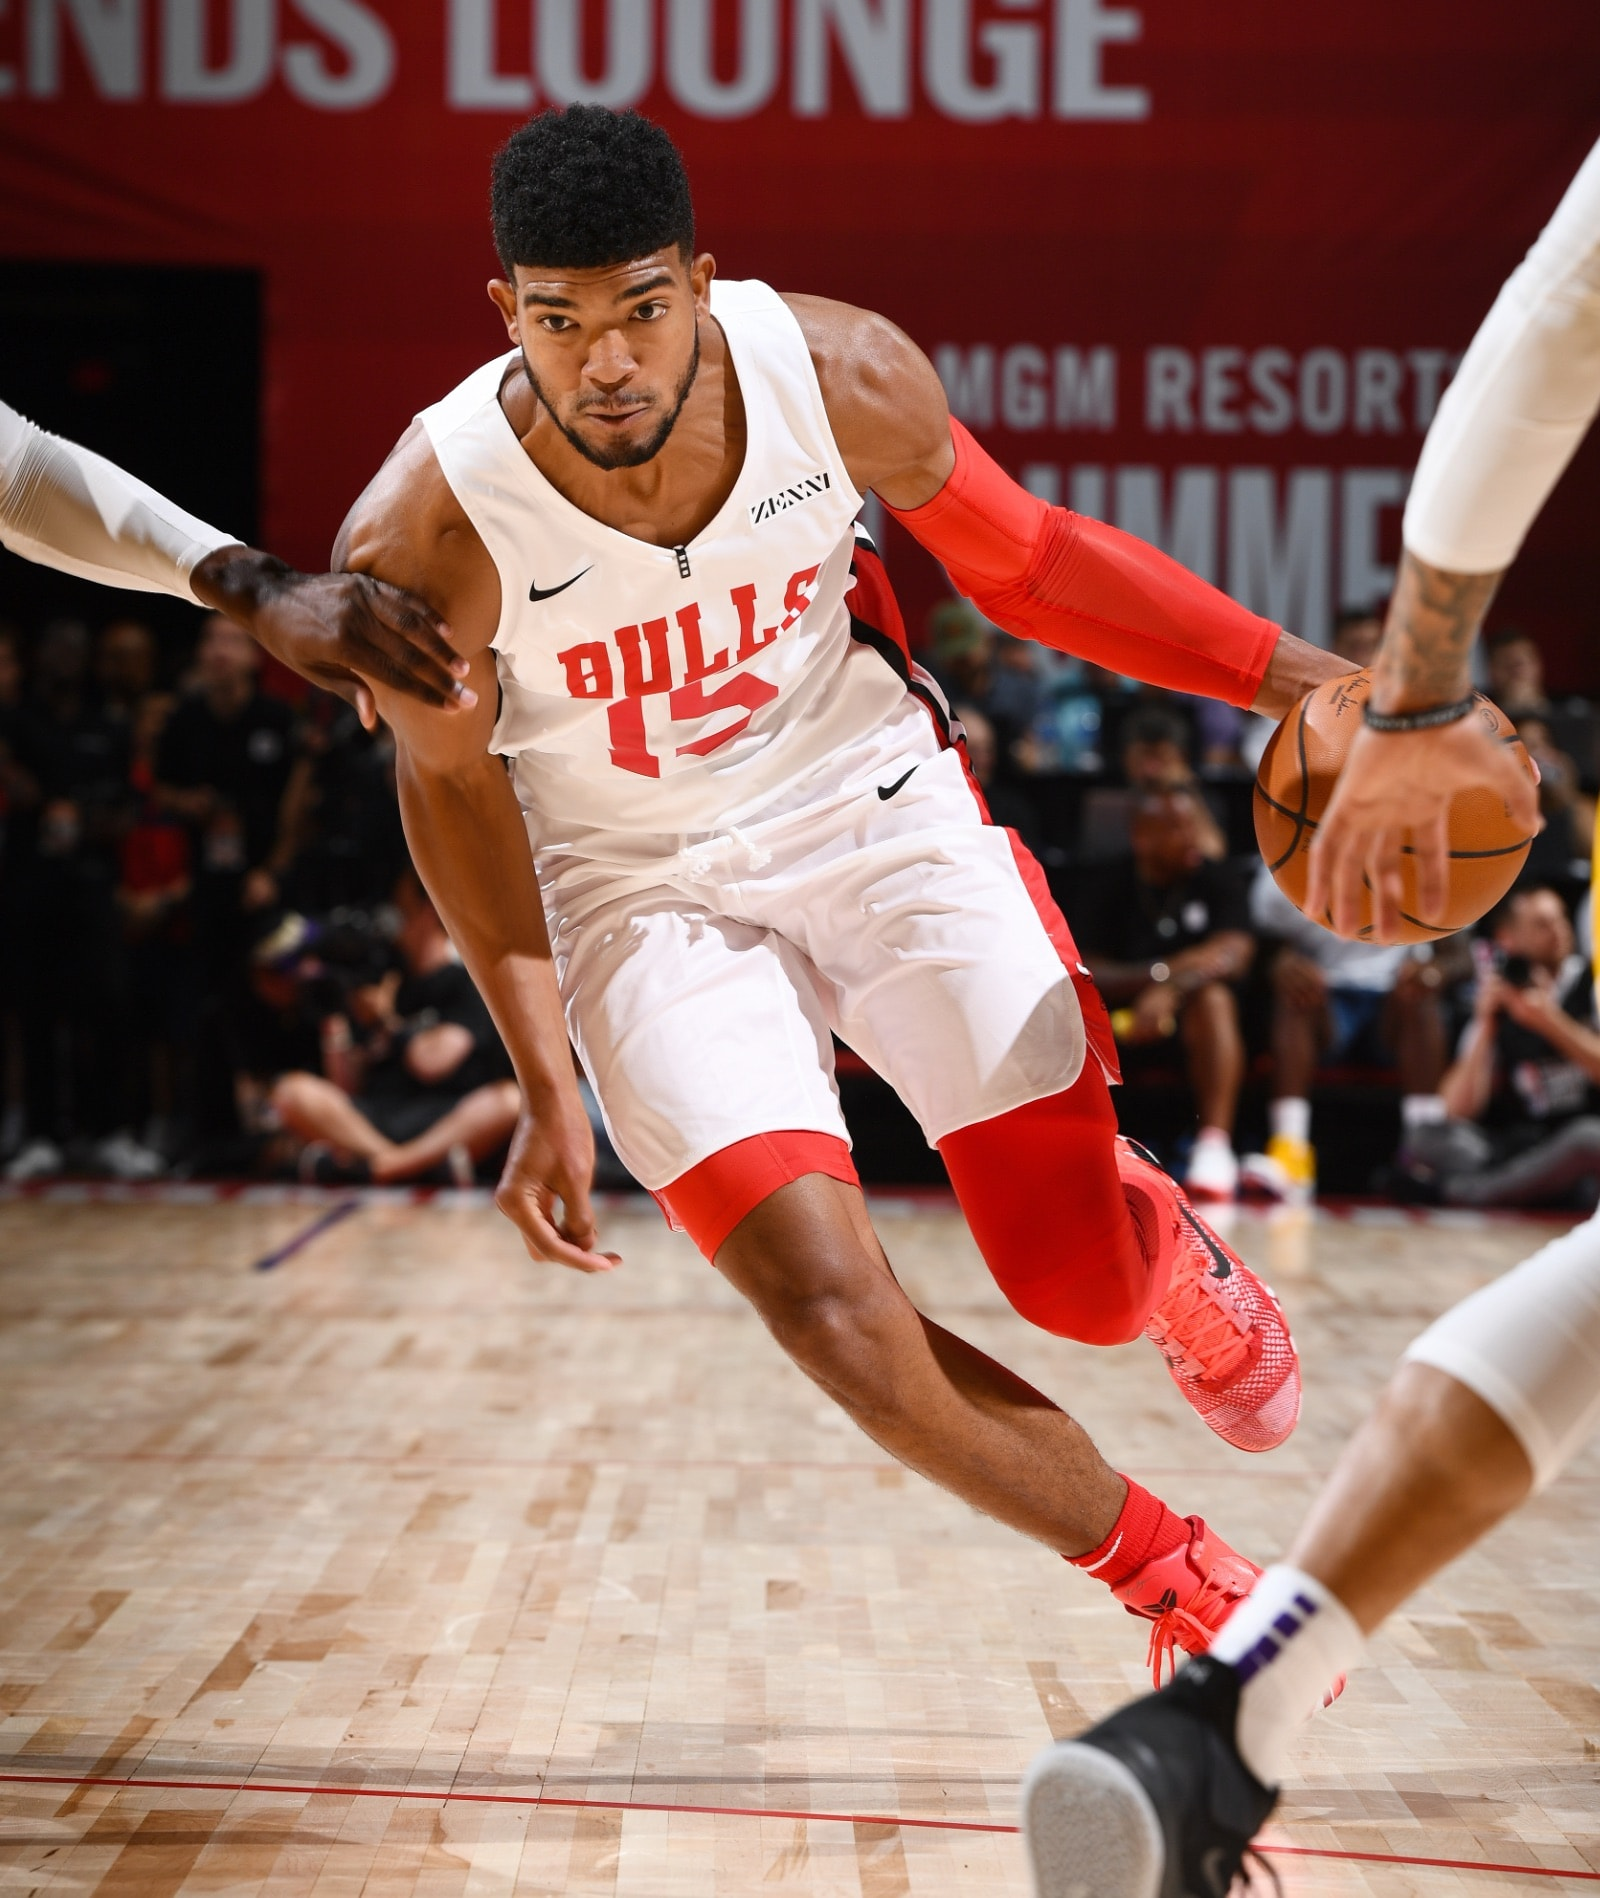 Chandler Hutchison #15 of the Chicago Bulls drives to the basket during the game against the Los Angeles Lakers during Day 1 of the 2019 Las Vegas Summer League on July 5, 2019 at the Thomas & Mack Center in Las Vegas, Nevada.